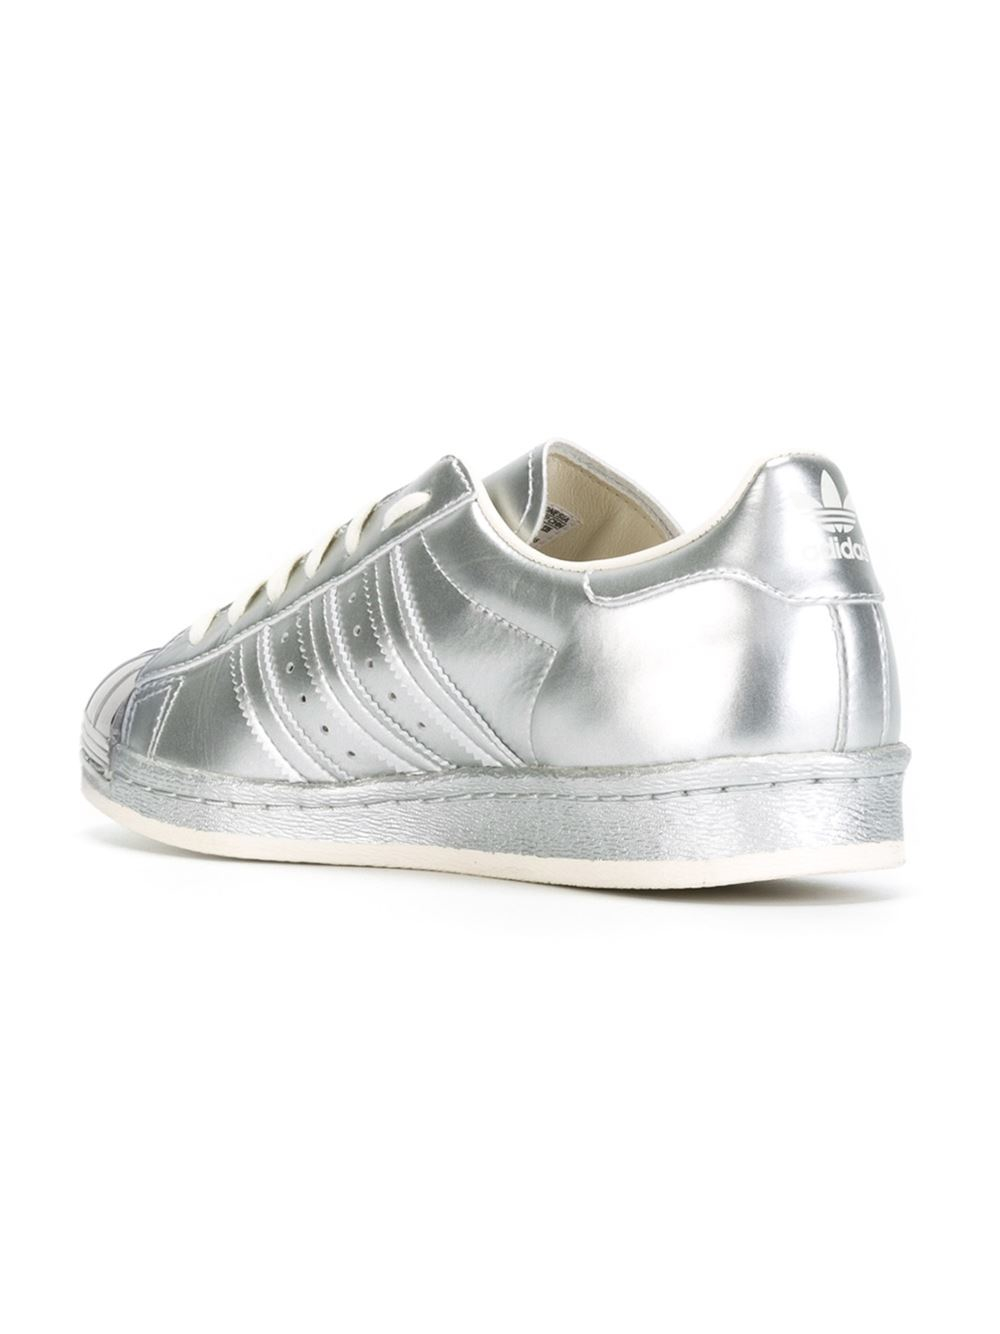 2428b1e1b8a29 ... ireland lyst adidas originals superstar 80s sneakers in metallic 4b675  87aff